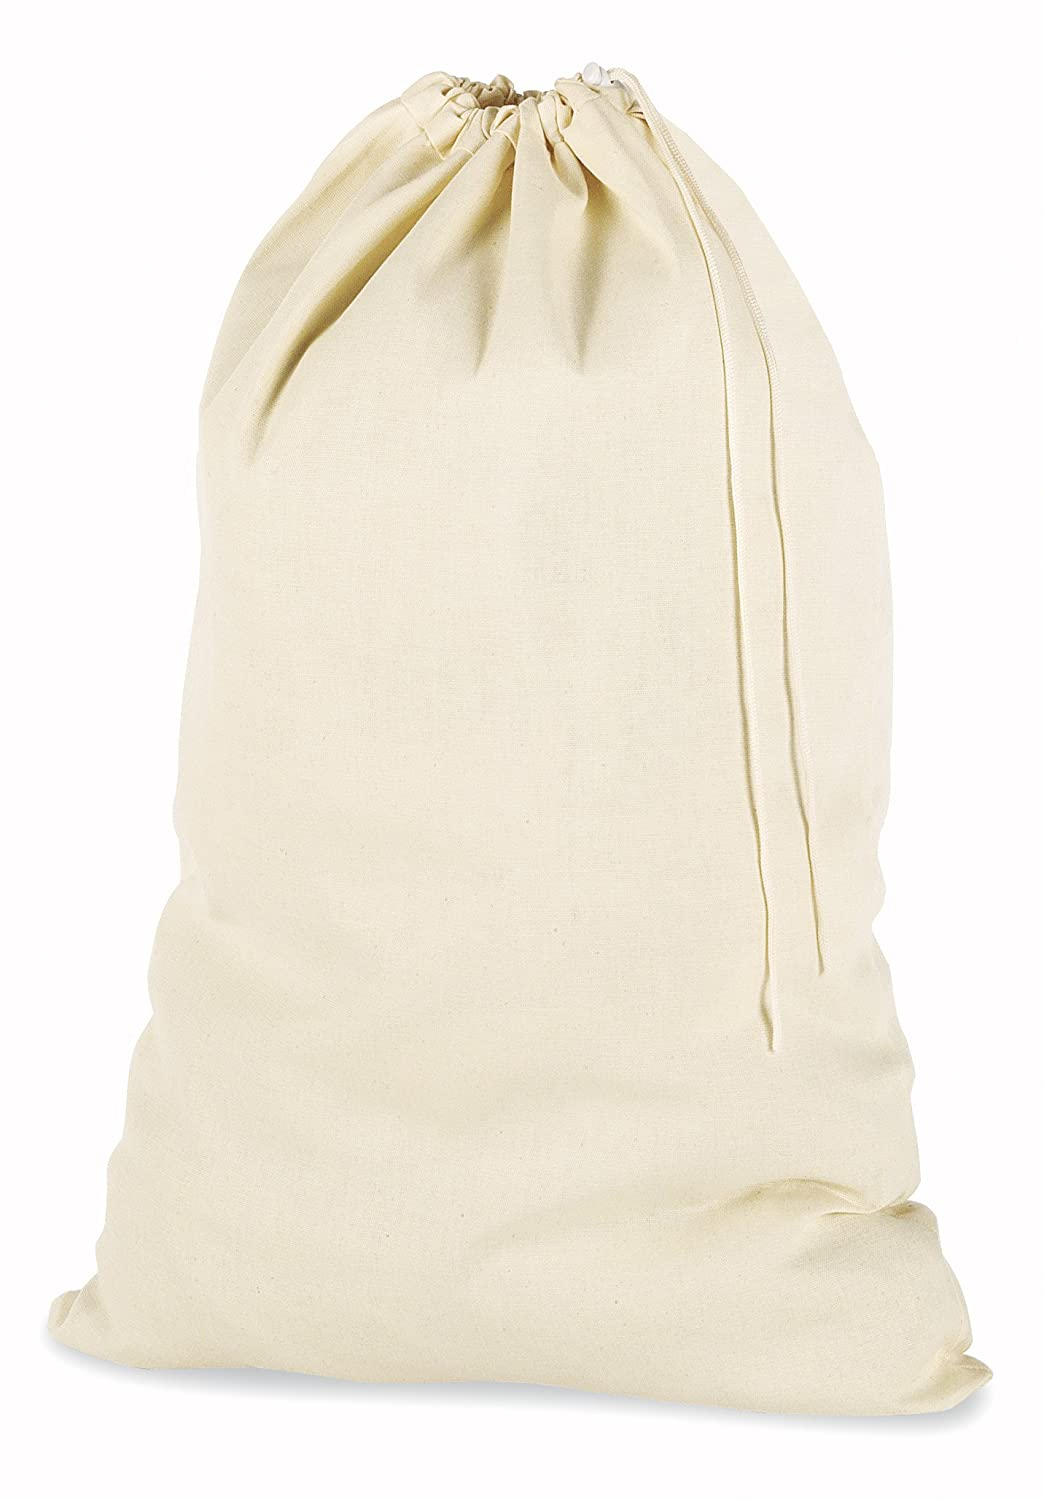 Amazon.com: Whitmor Natural Cotton Laundry Bag: Home & Kitchen